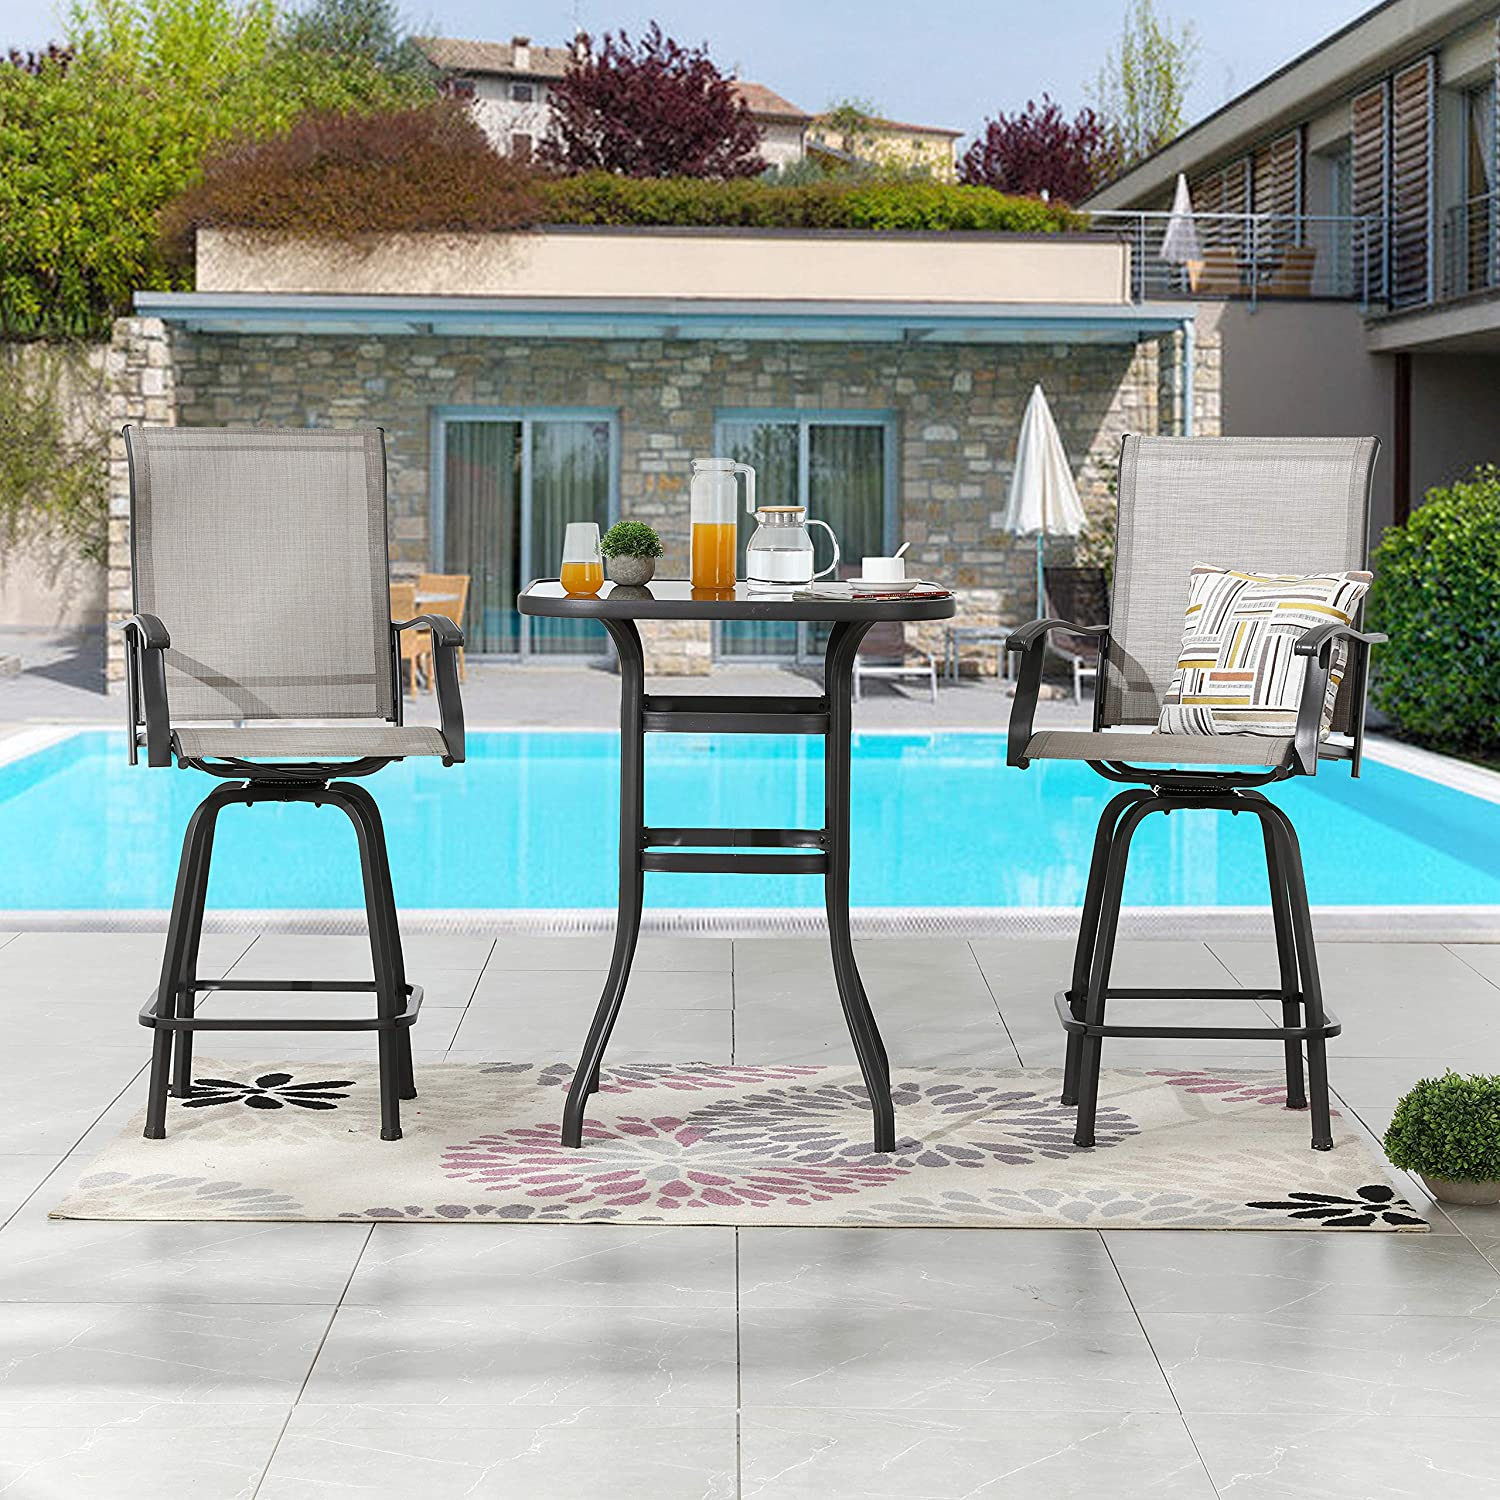 LOKATSE HOME Bar Height Bistro Patio Table Set 3 Piece High Top with Swivel Chair Outdoor Furniture Suitable for Yard Backyard and Garden Grey, Tesling, 3 Pcs